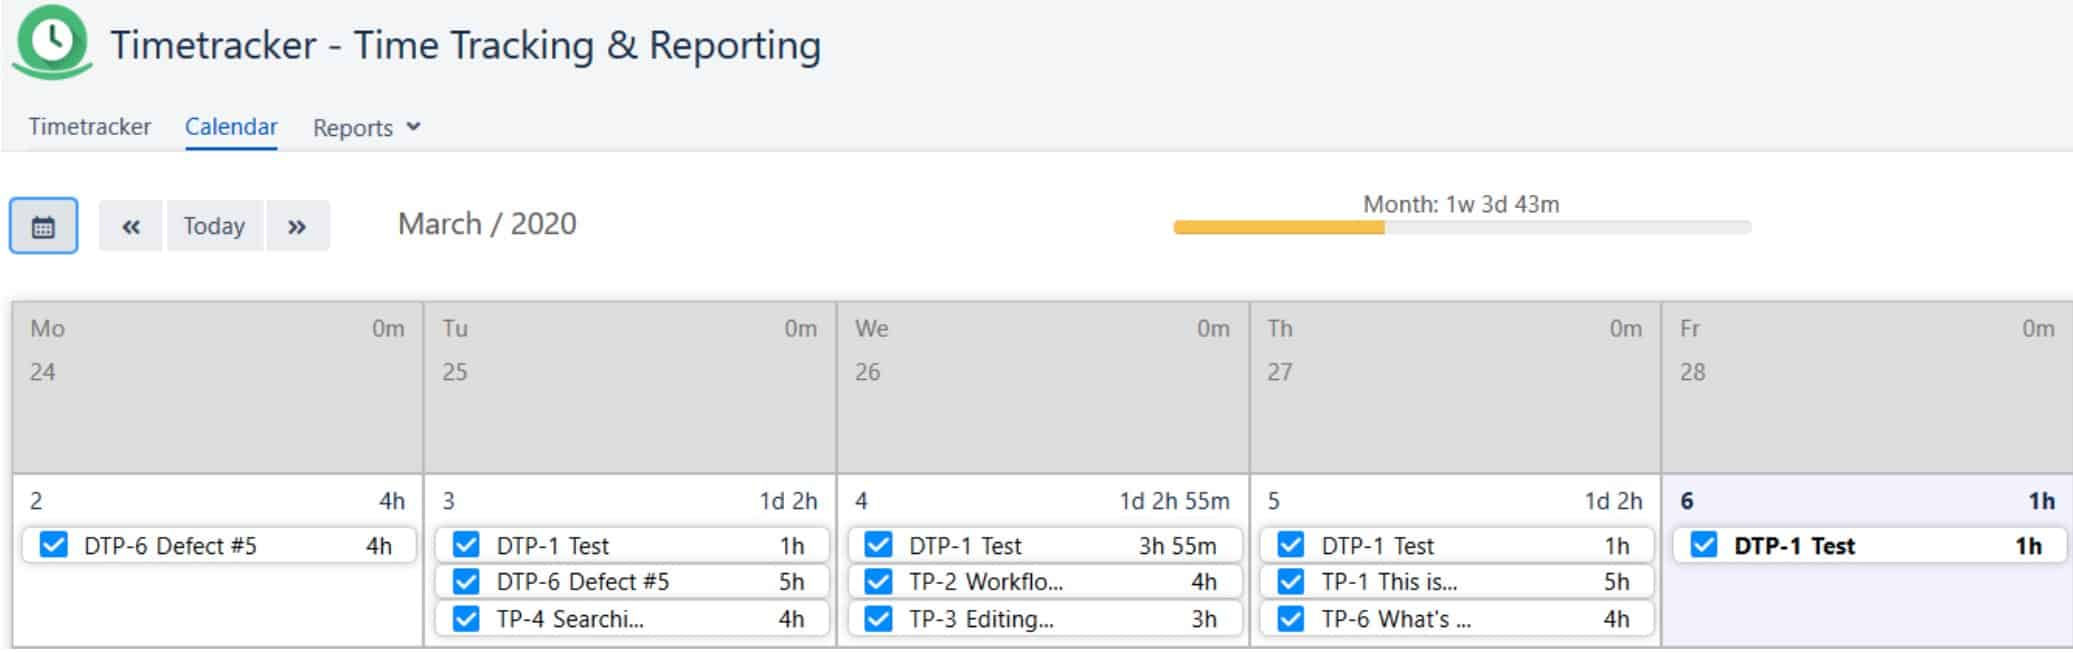 time tracking and reporting for jira